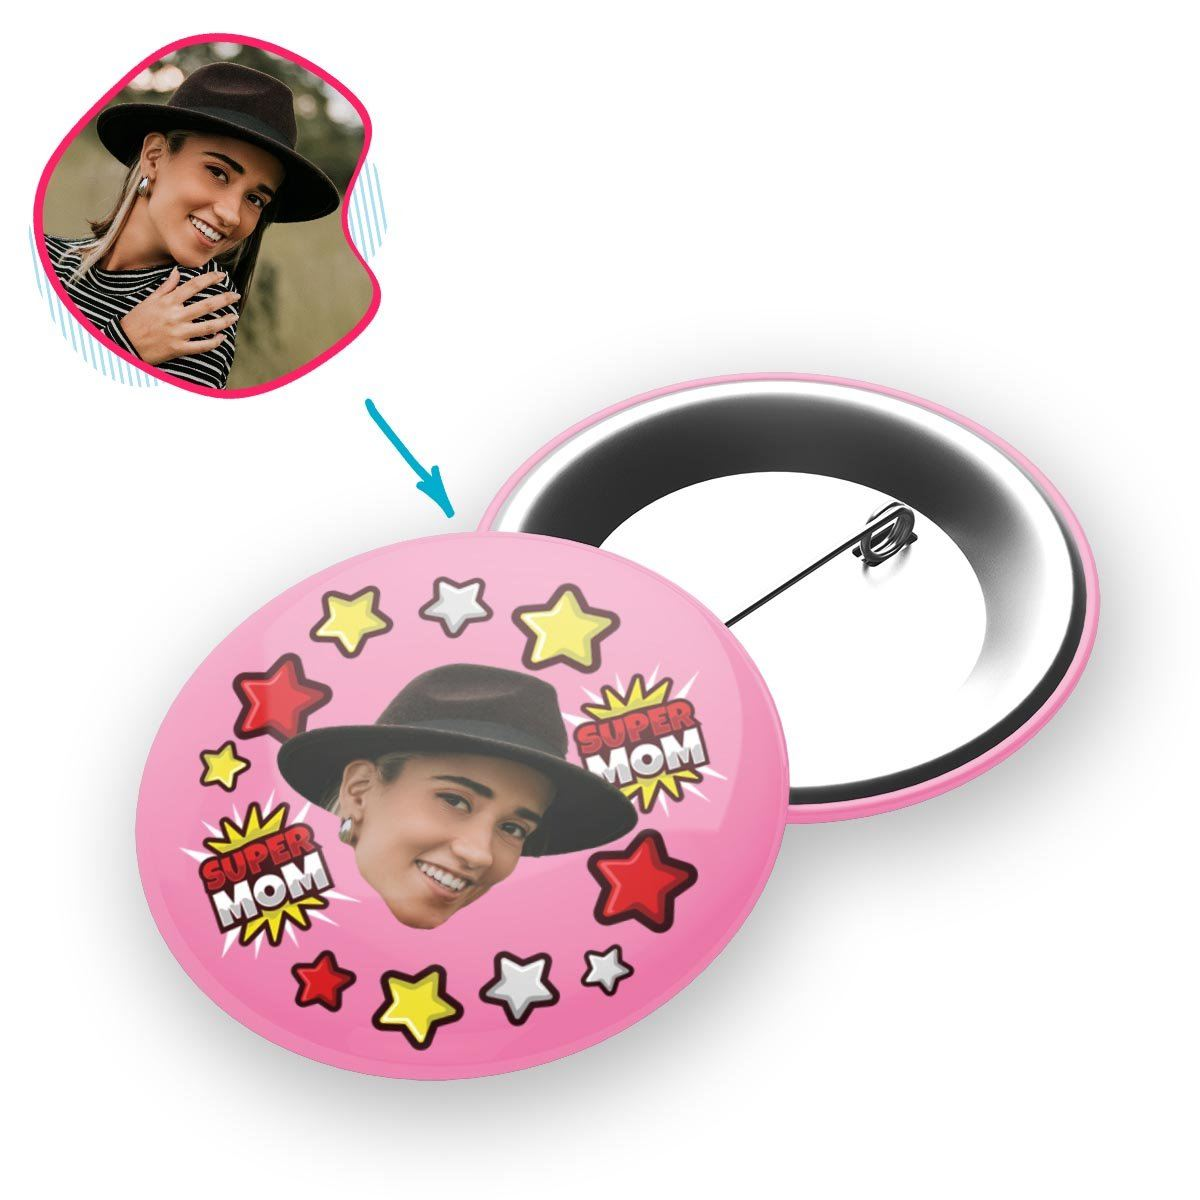 pink Super Mom pin personalized with photo of face printed on it